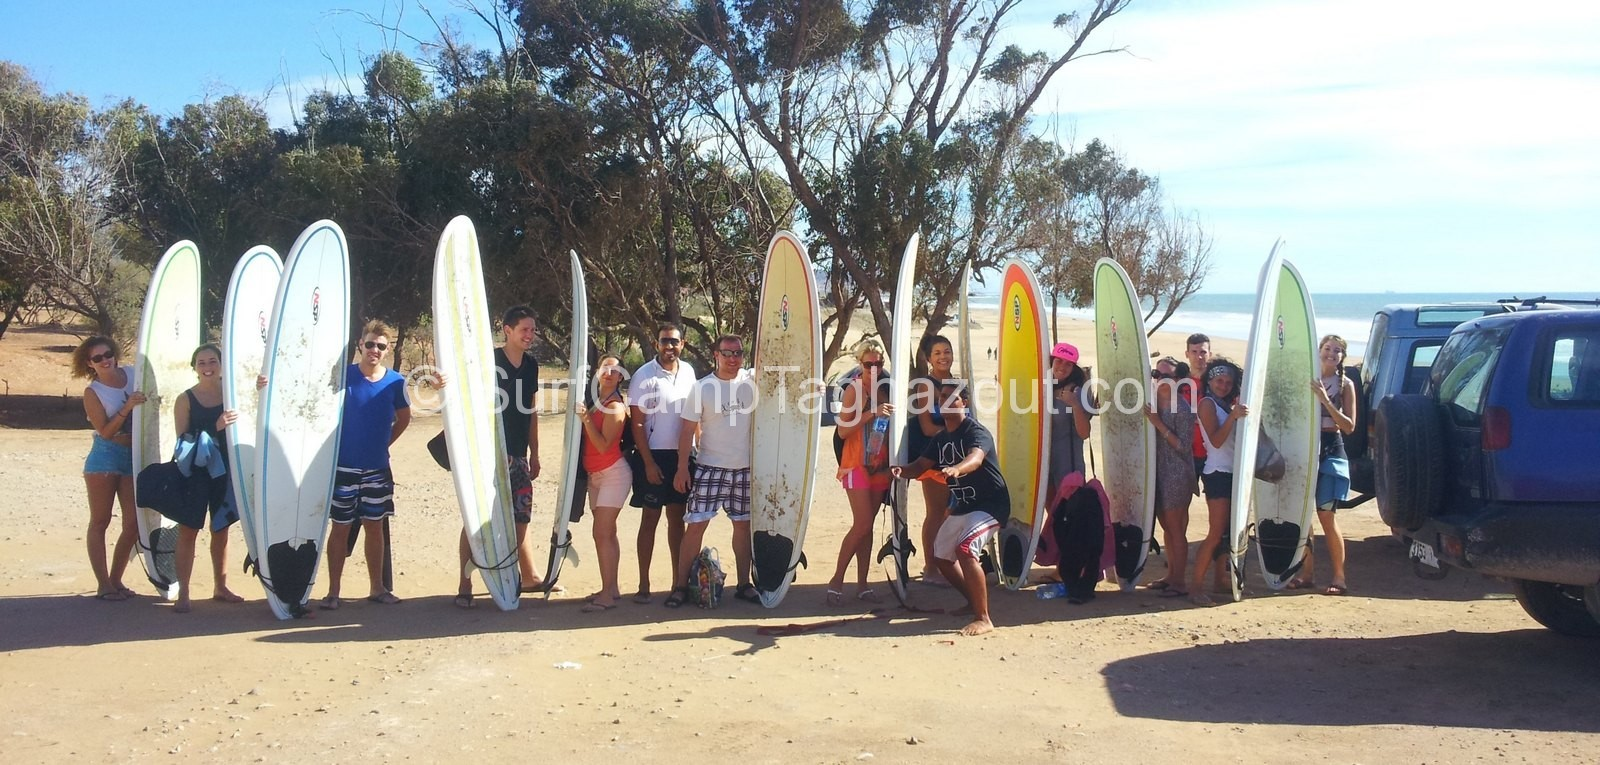 surf camp taghazout group surf lesson school morocco